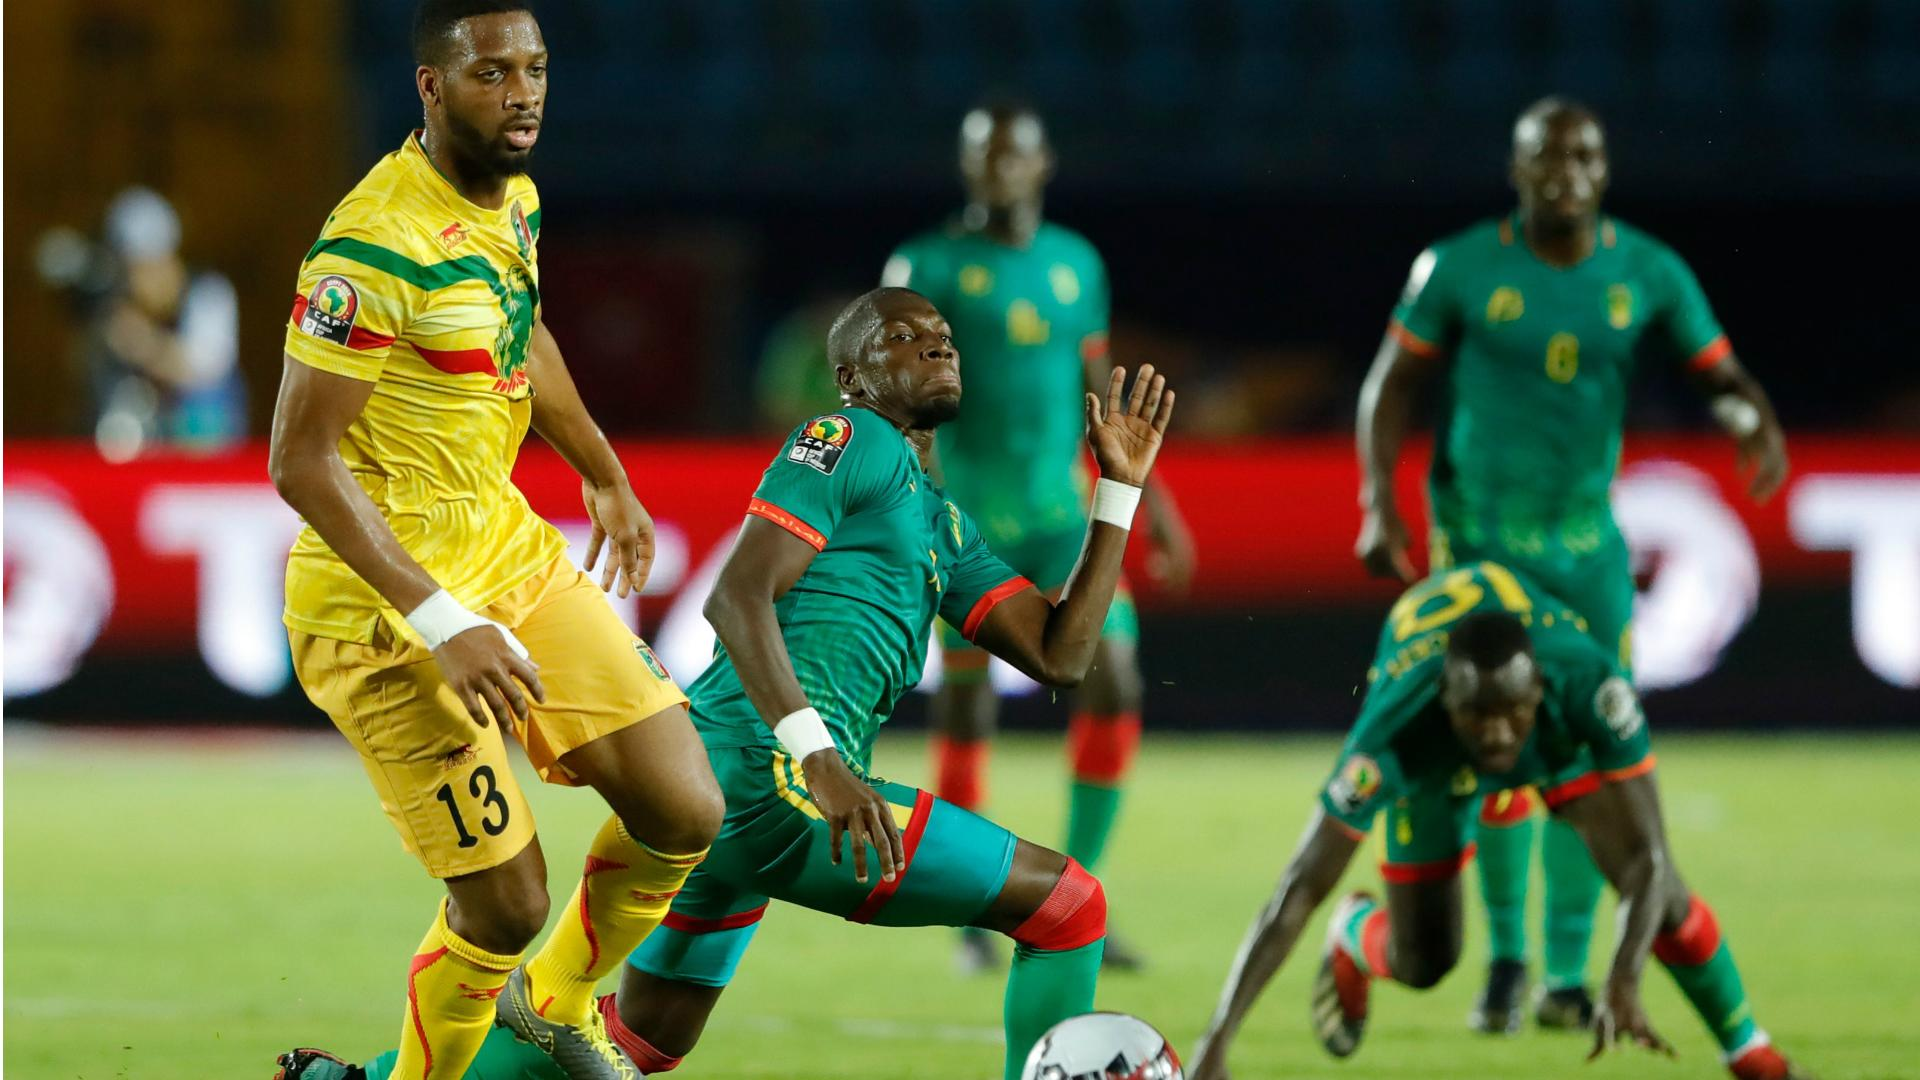 Afcon 2019: We have what we need to beat Angola - Mauritania striker